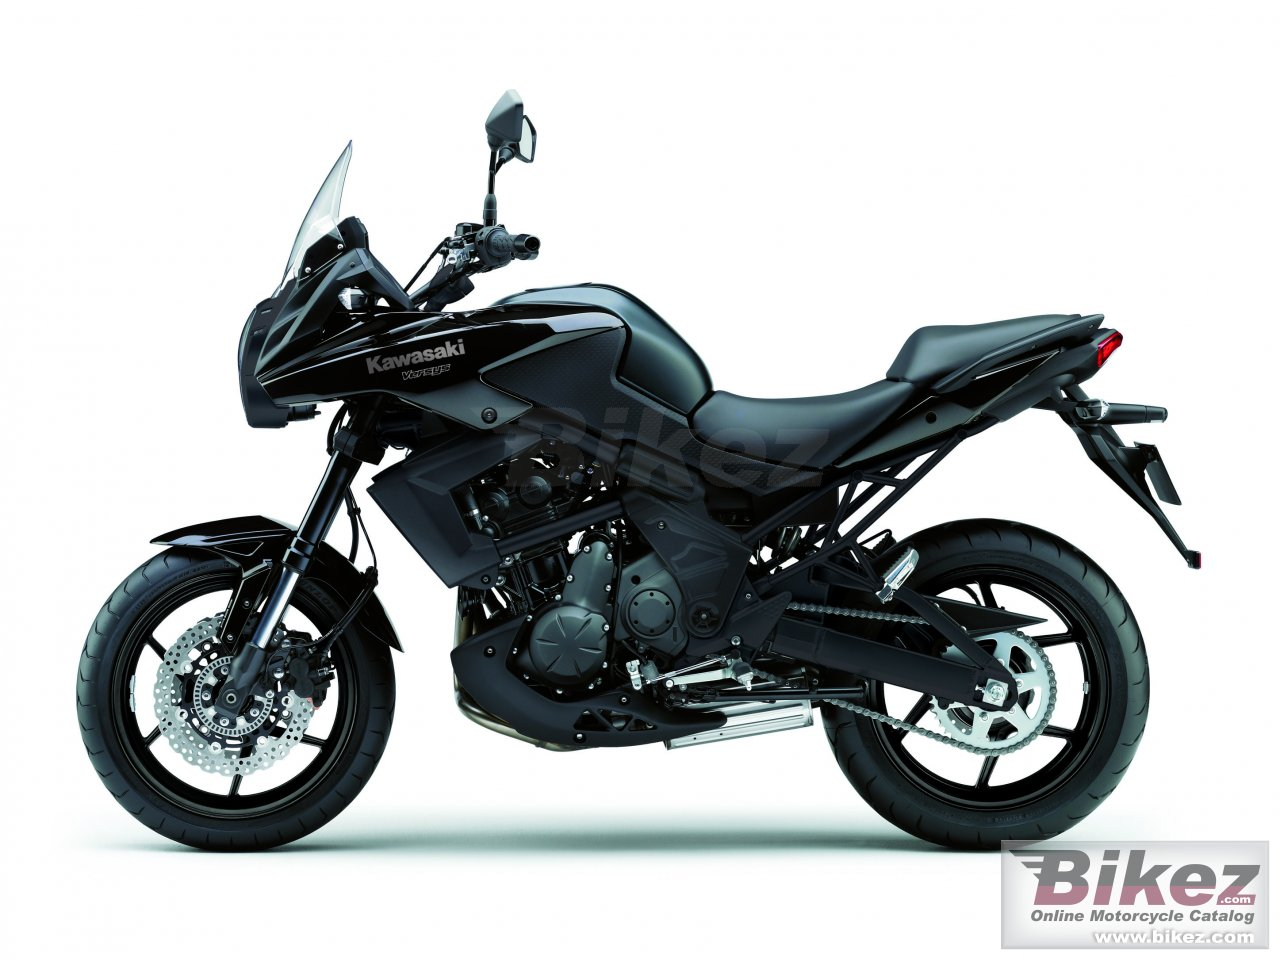 Big Kawasaki versys 650 picture and wallpaper from Bikez.com